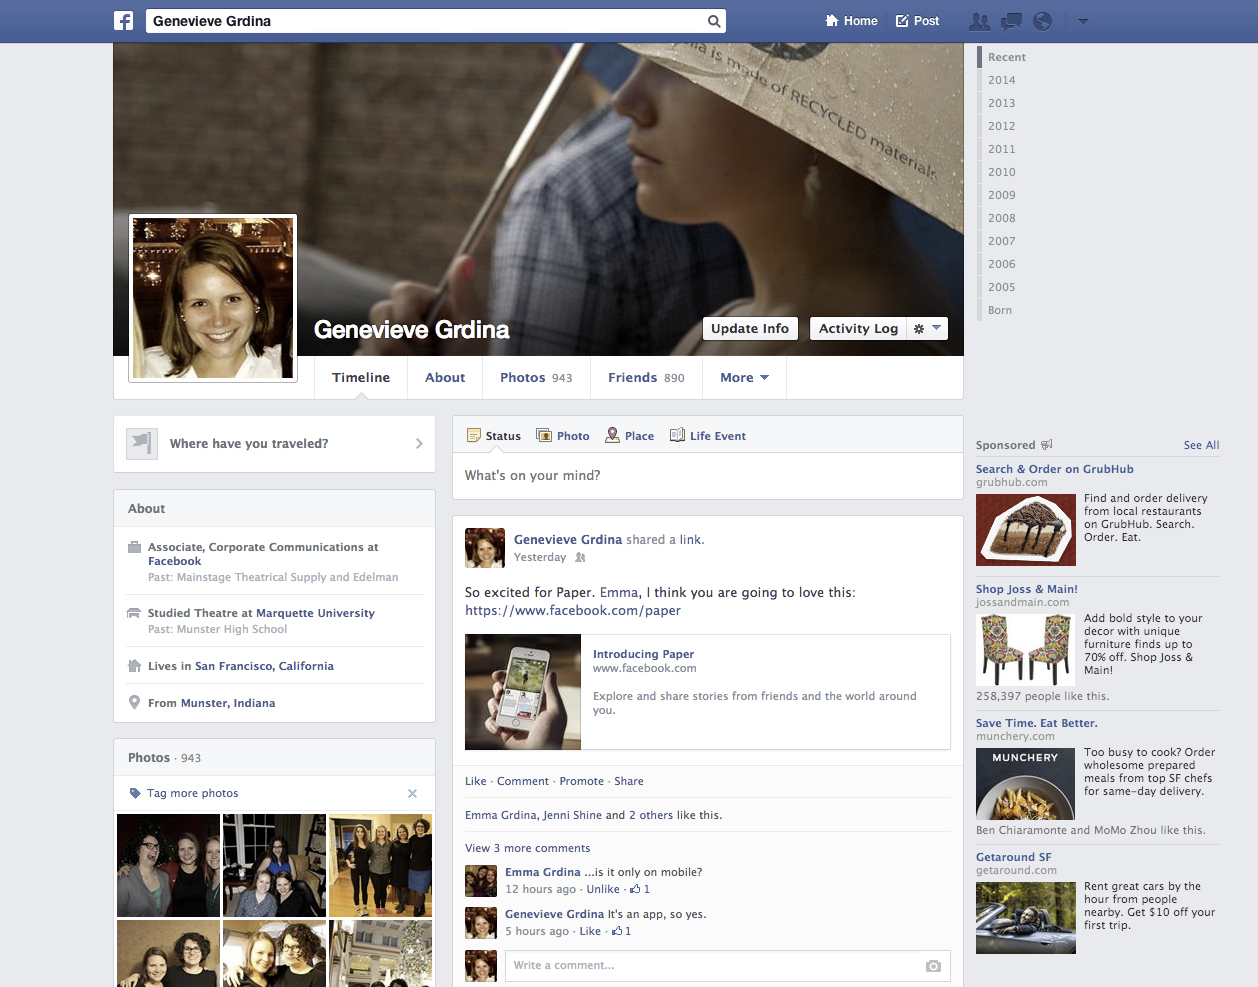 how to delete birthdate from facebook profile